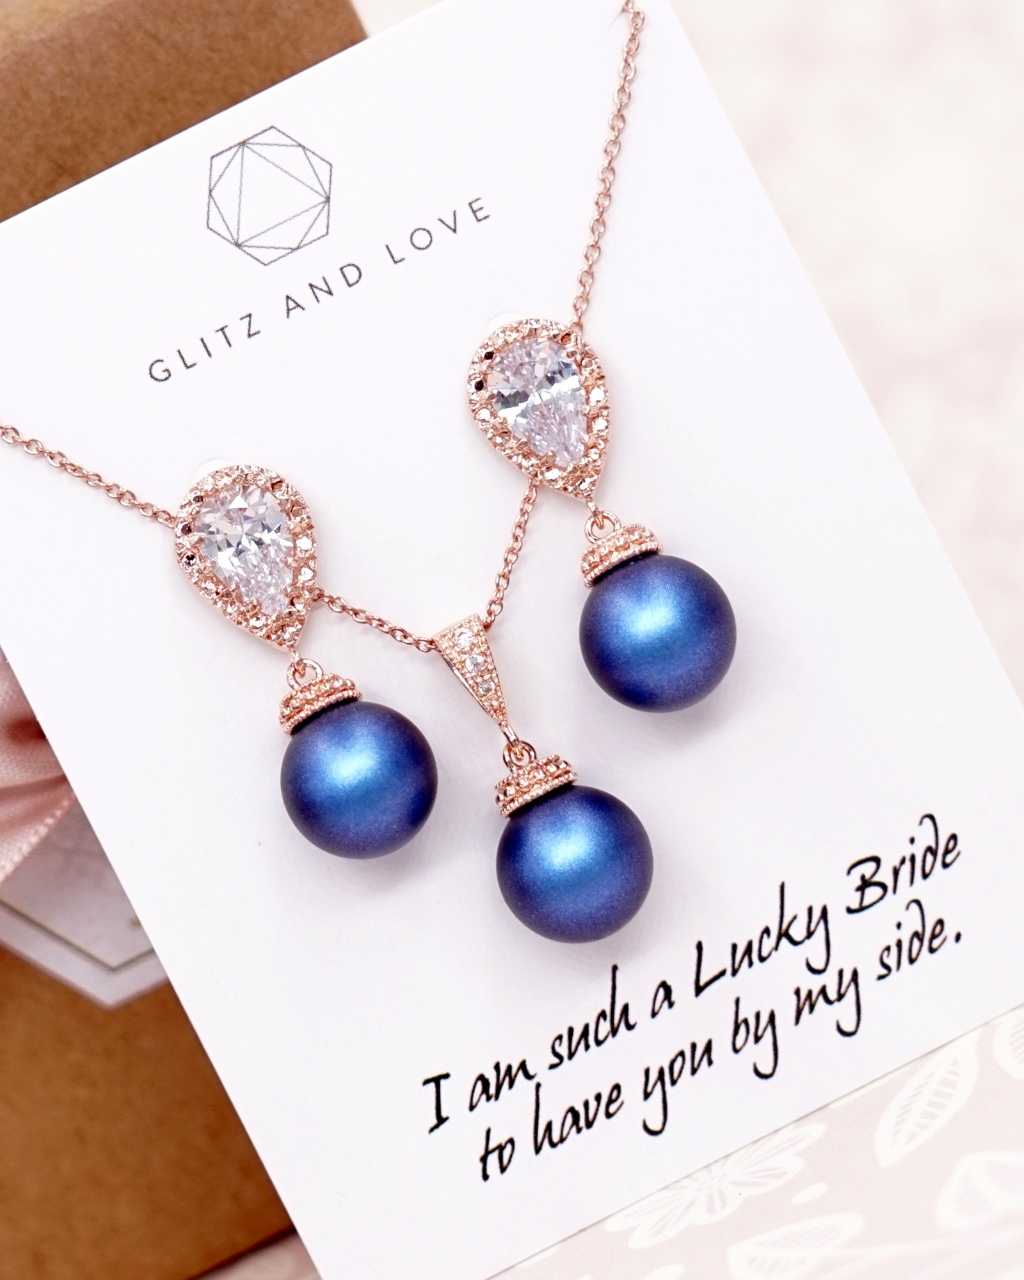 Rose Gold Navy Blue Pearl Earrings and Necklace jewellery set, wedding, brides, bridesmaids, bridal shower gifts, personalised gifts